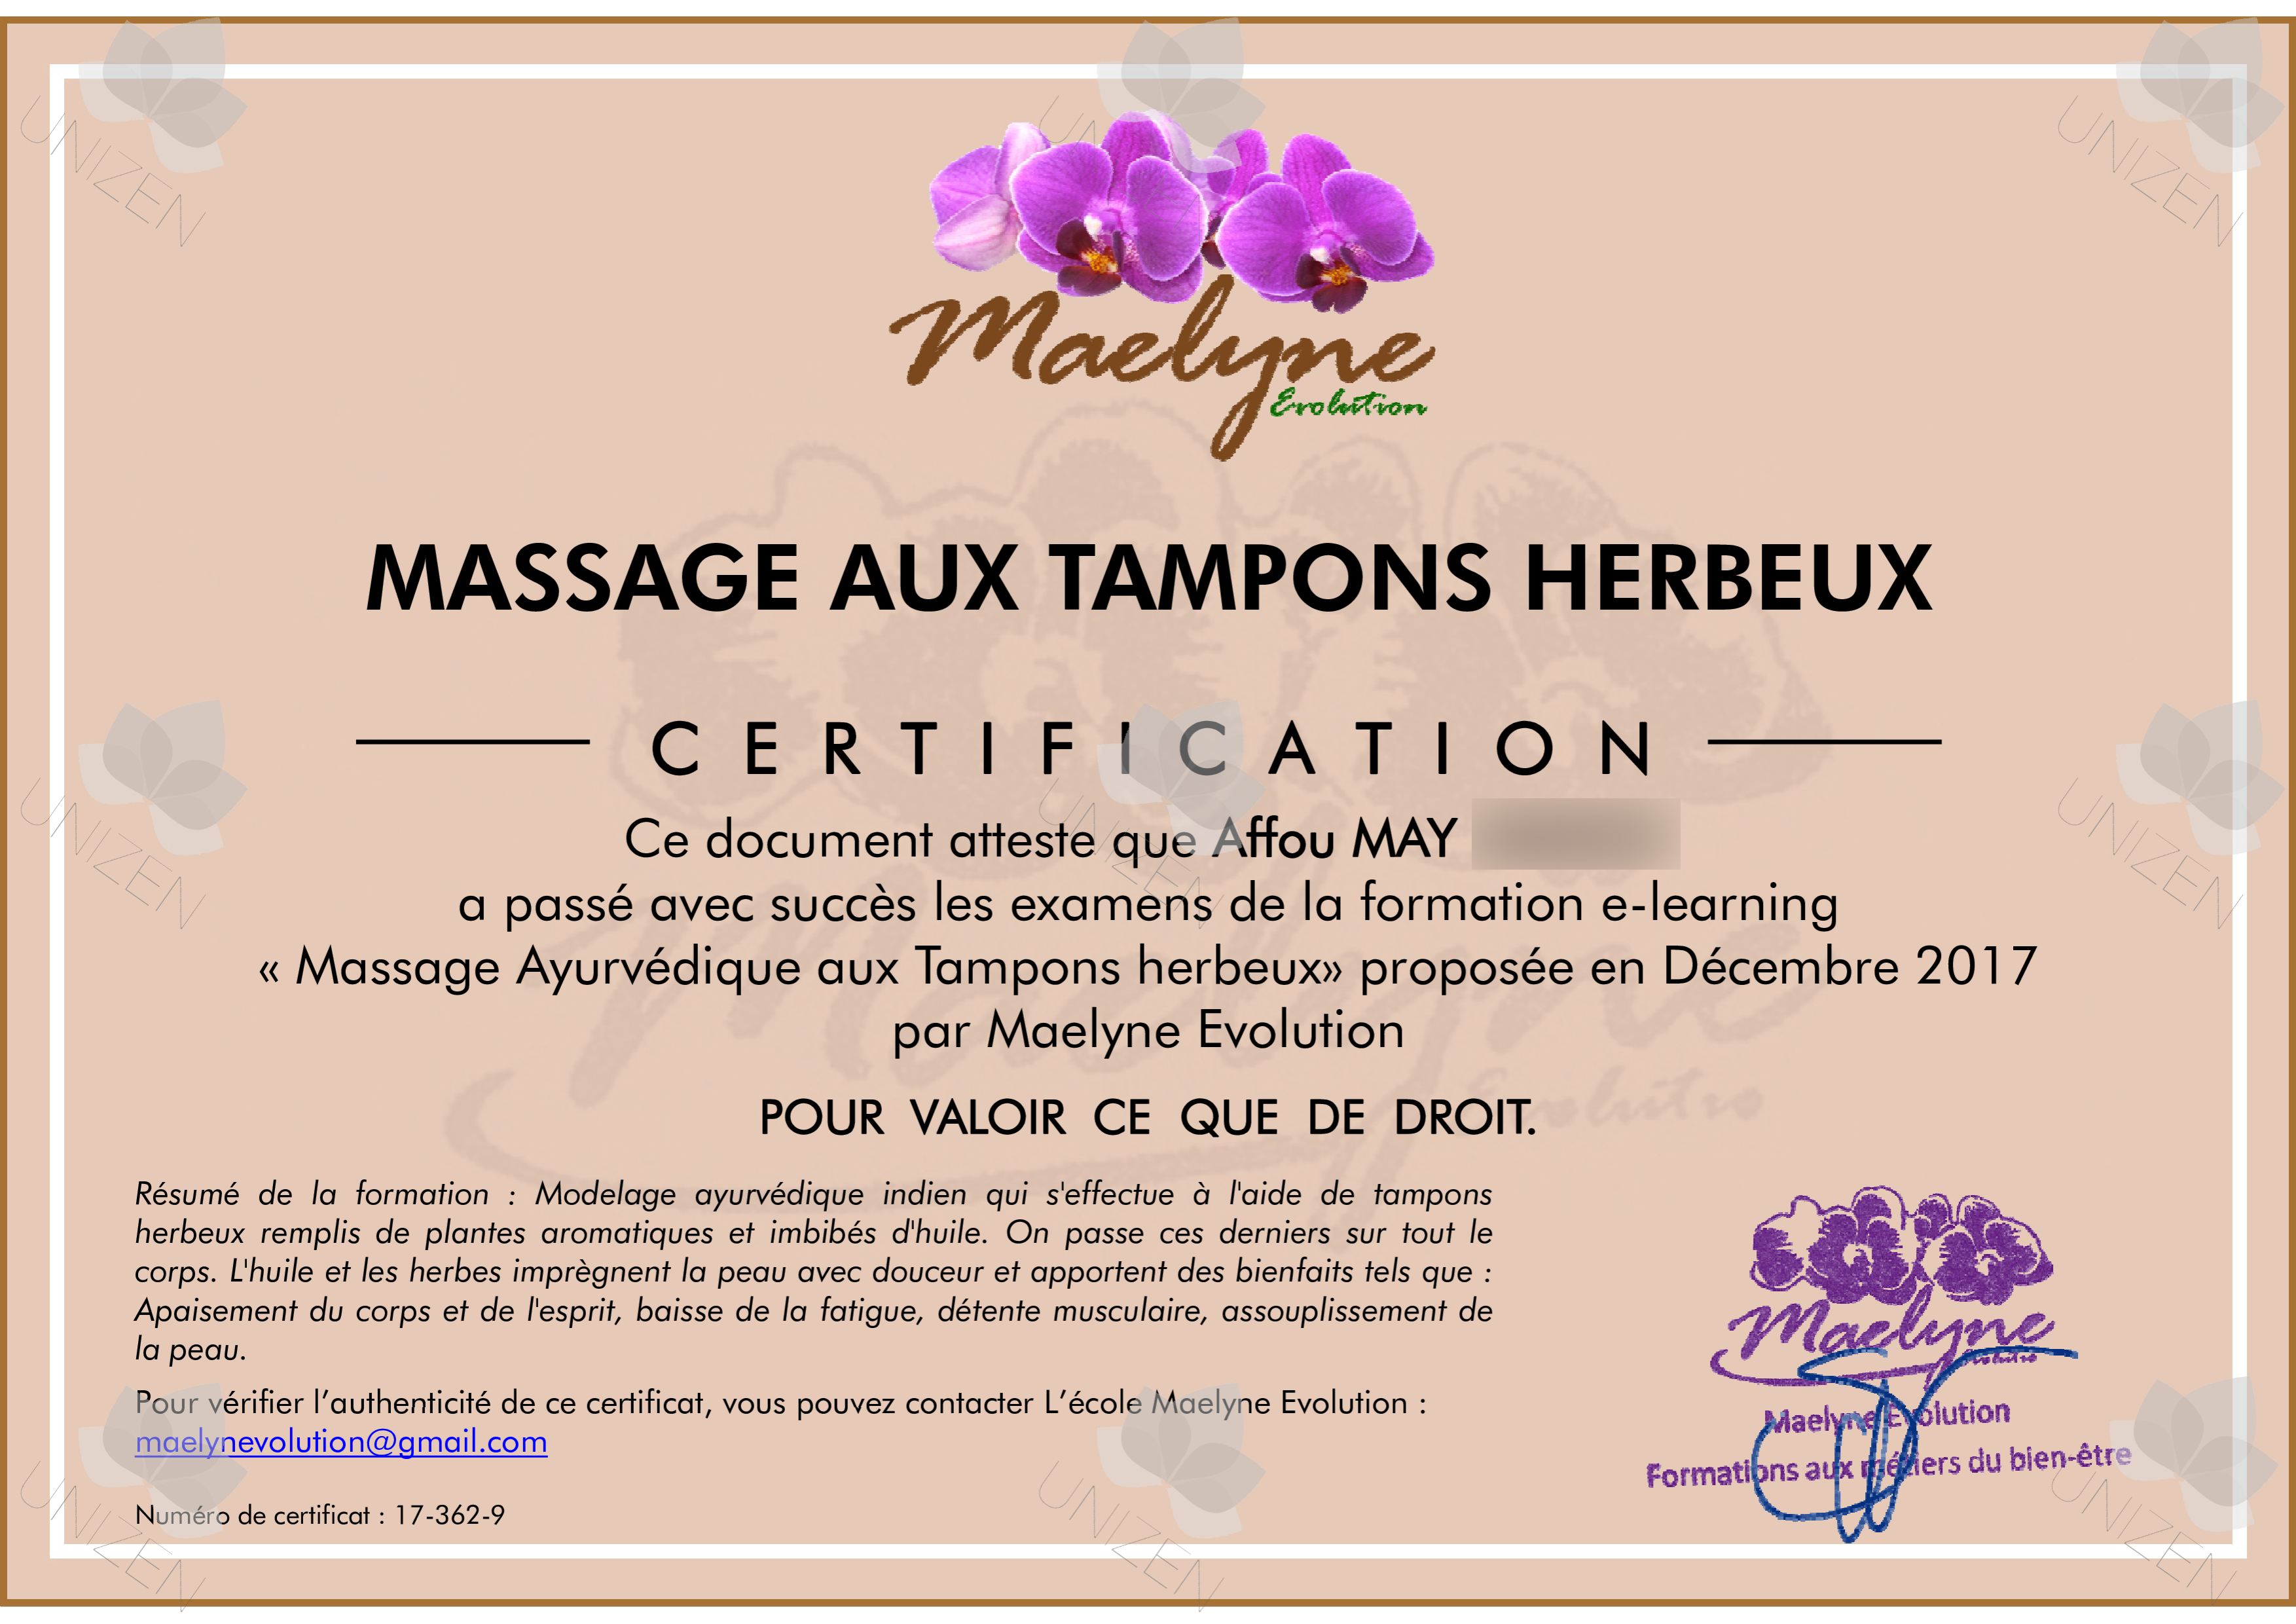 5bc34a304958f_CERTIFICAT MODELAGE AUX TAMPONS HERBEUX.pdf